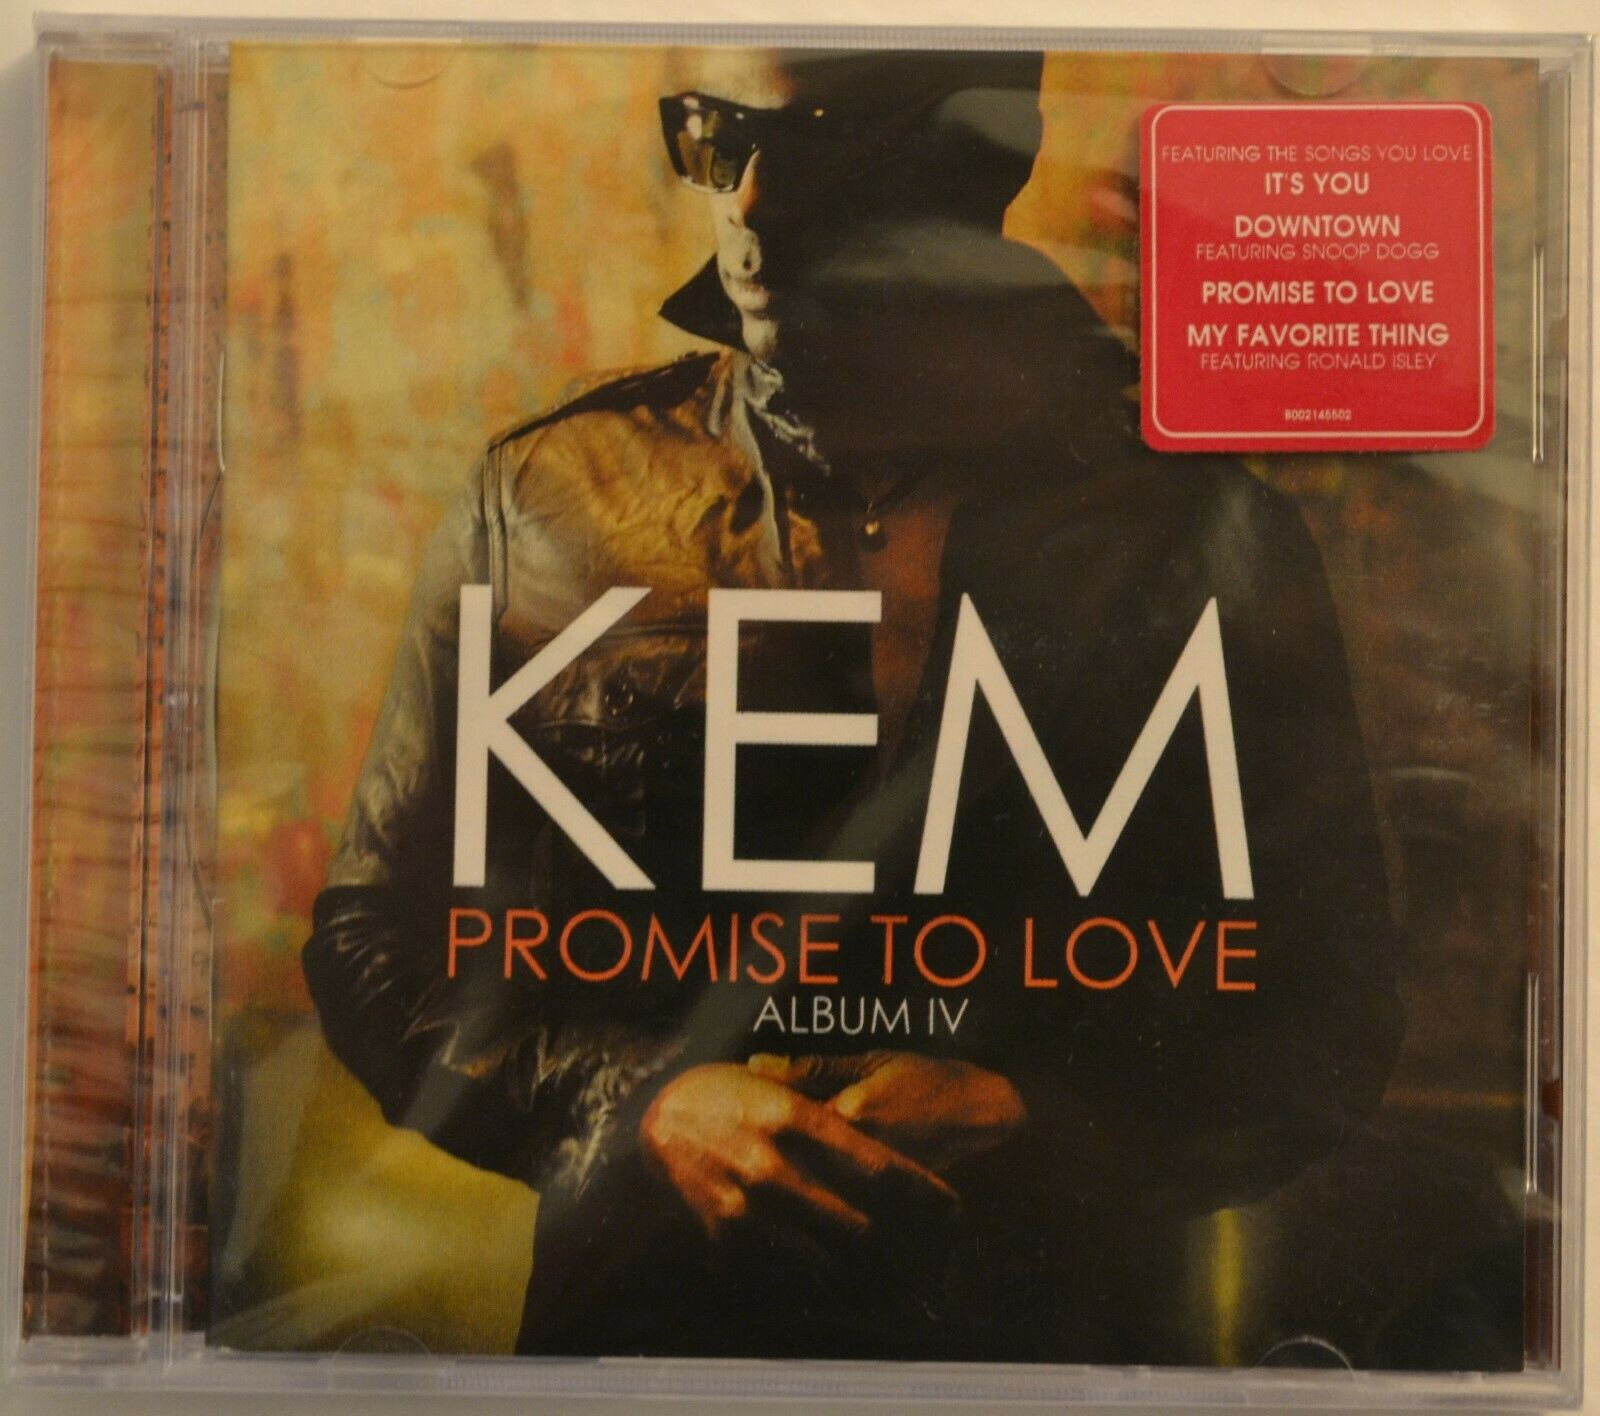 Promise to Love * by Kem (Motown)